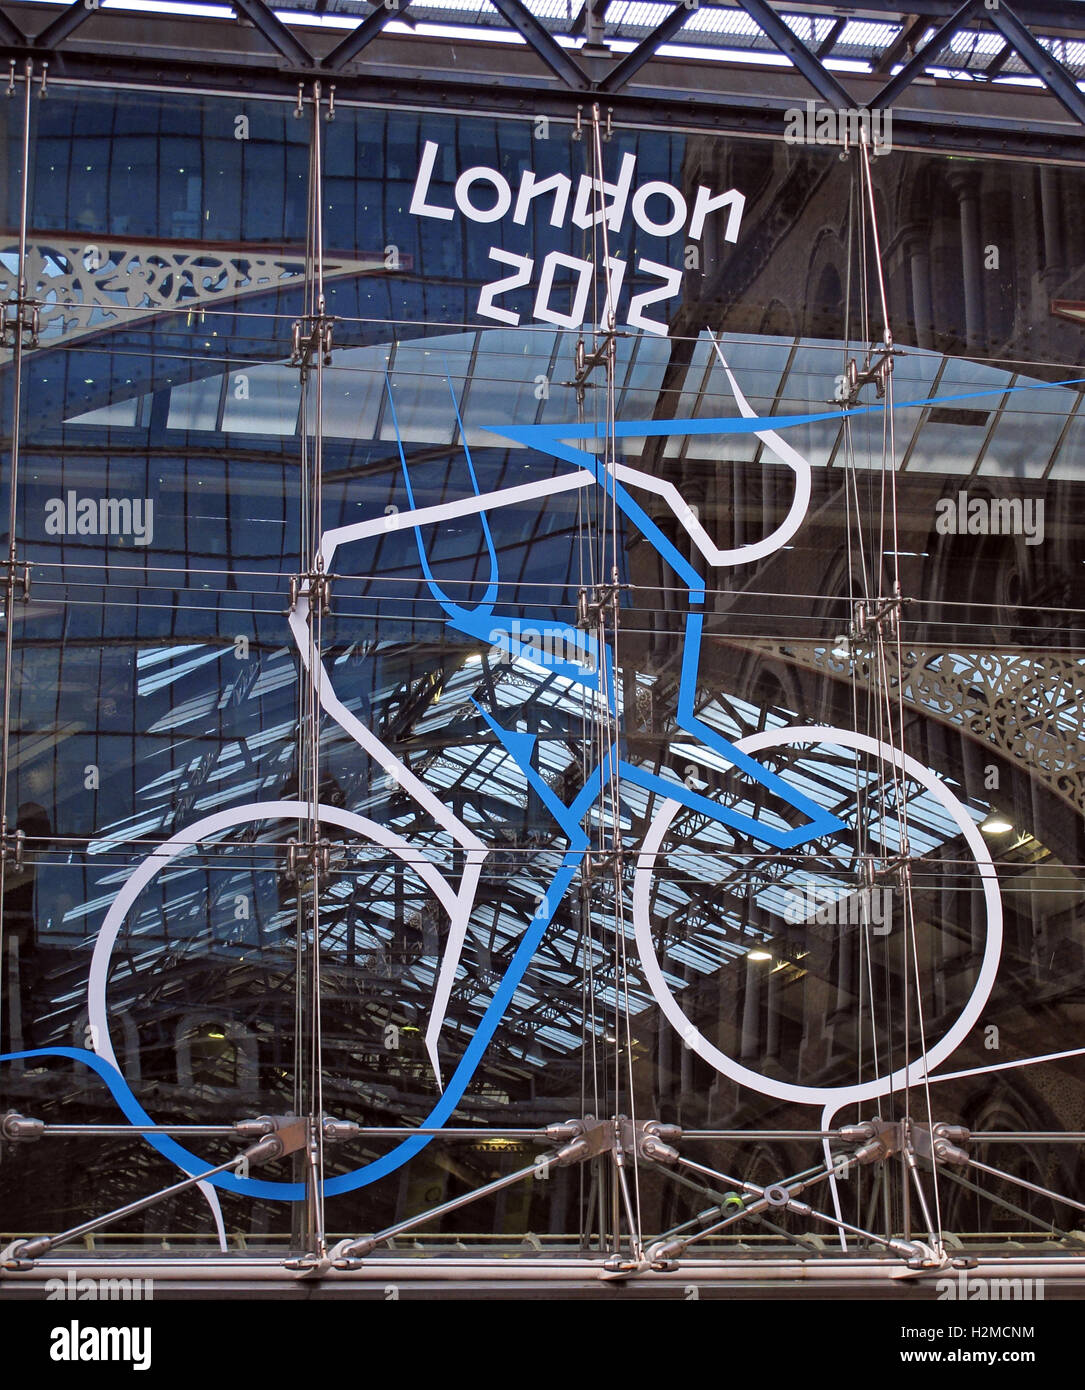 London2012,railway,rail,termini,cycle,team,blue,white,medal,gold,silver,bronze,promotion,Liverpool St Station,Liverpool Street Station,GoTonySmith,@HotpixUK,Tony,Smith,UK,GB,Great,Britain,United,Kingdom,English,British,England,Buy Pictures of,Buy Images Of,Images of,Stock Images,Tony Smith,United Kingdom,Great Britain,British Isles